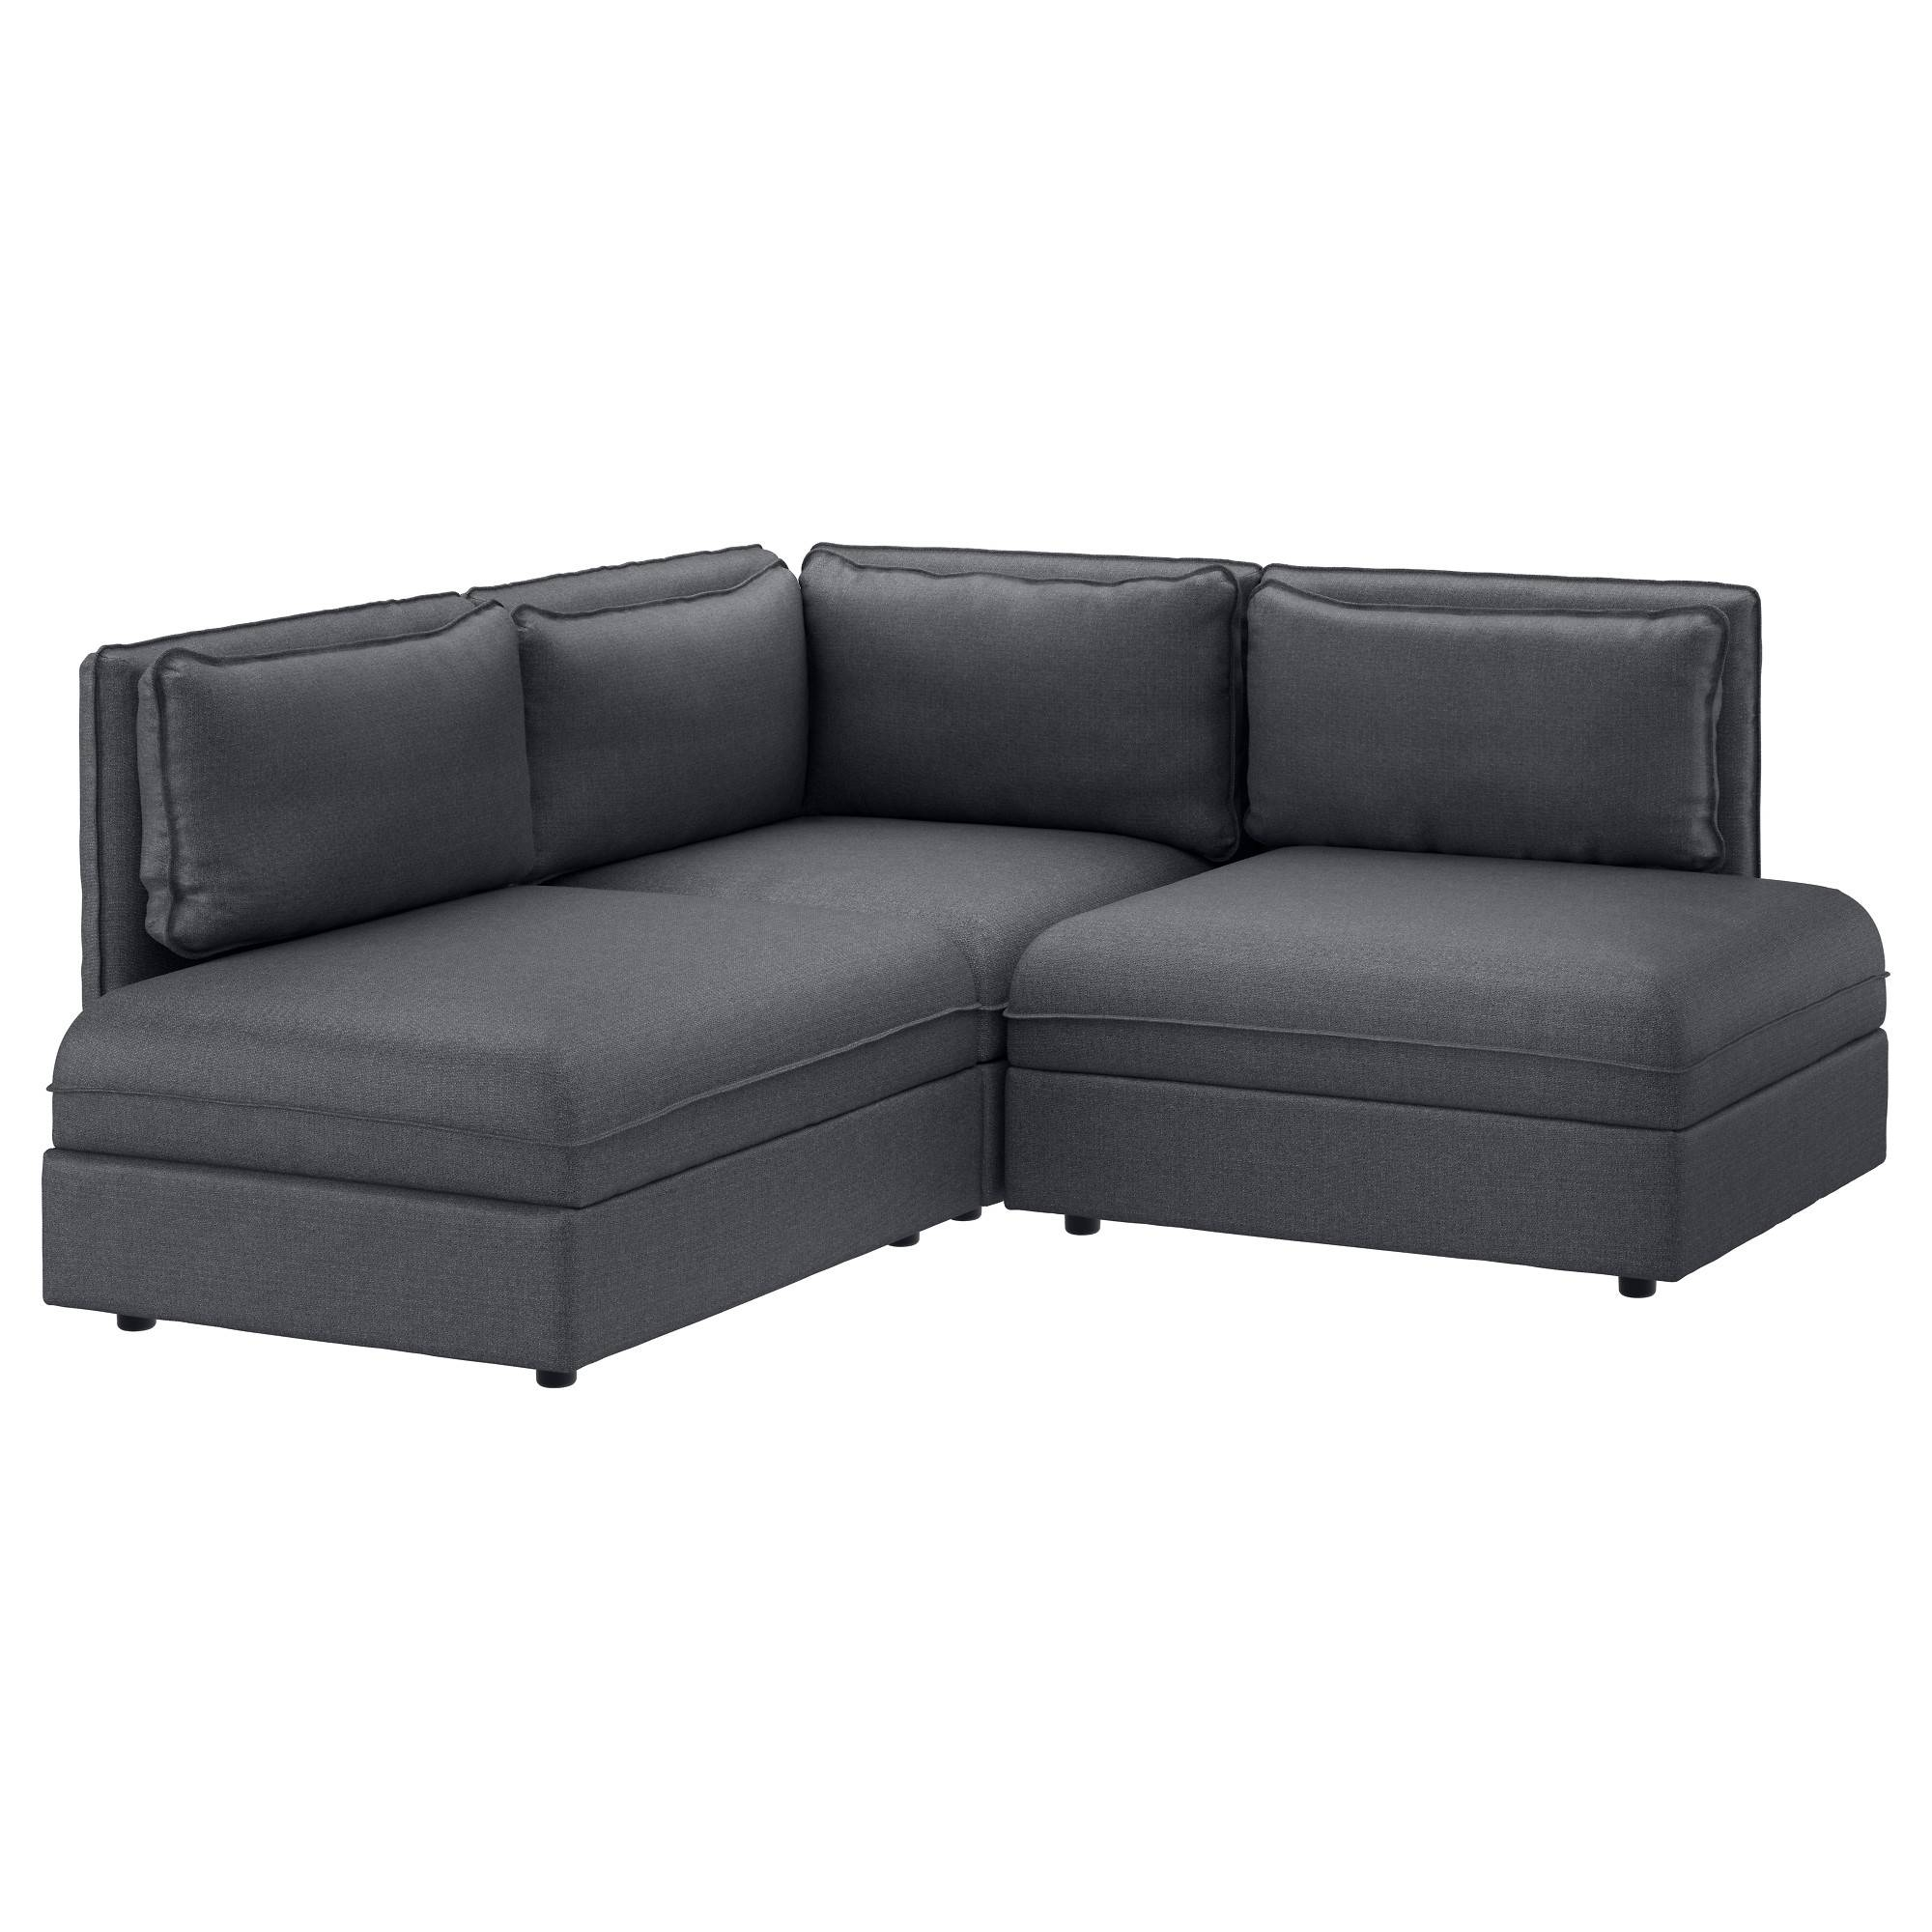 Sofas | Ikea Ireland - Dublin with regard to Backless Chaise Sofa (Image 30 of 30)